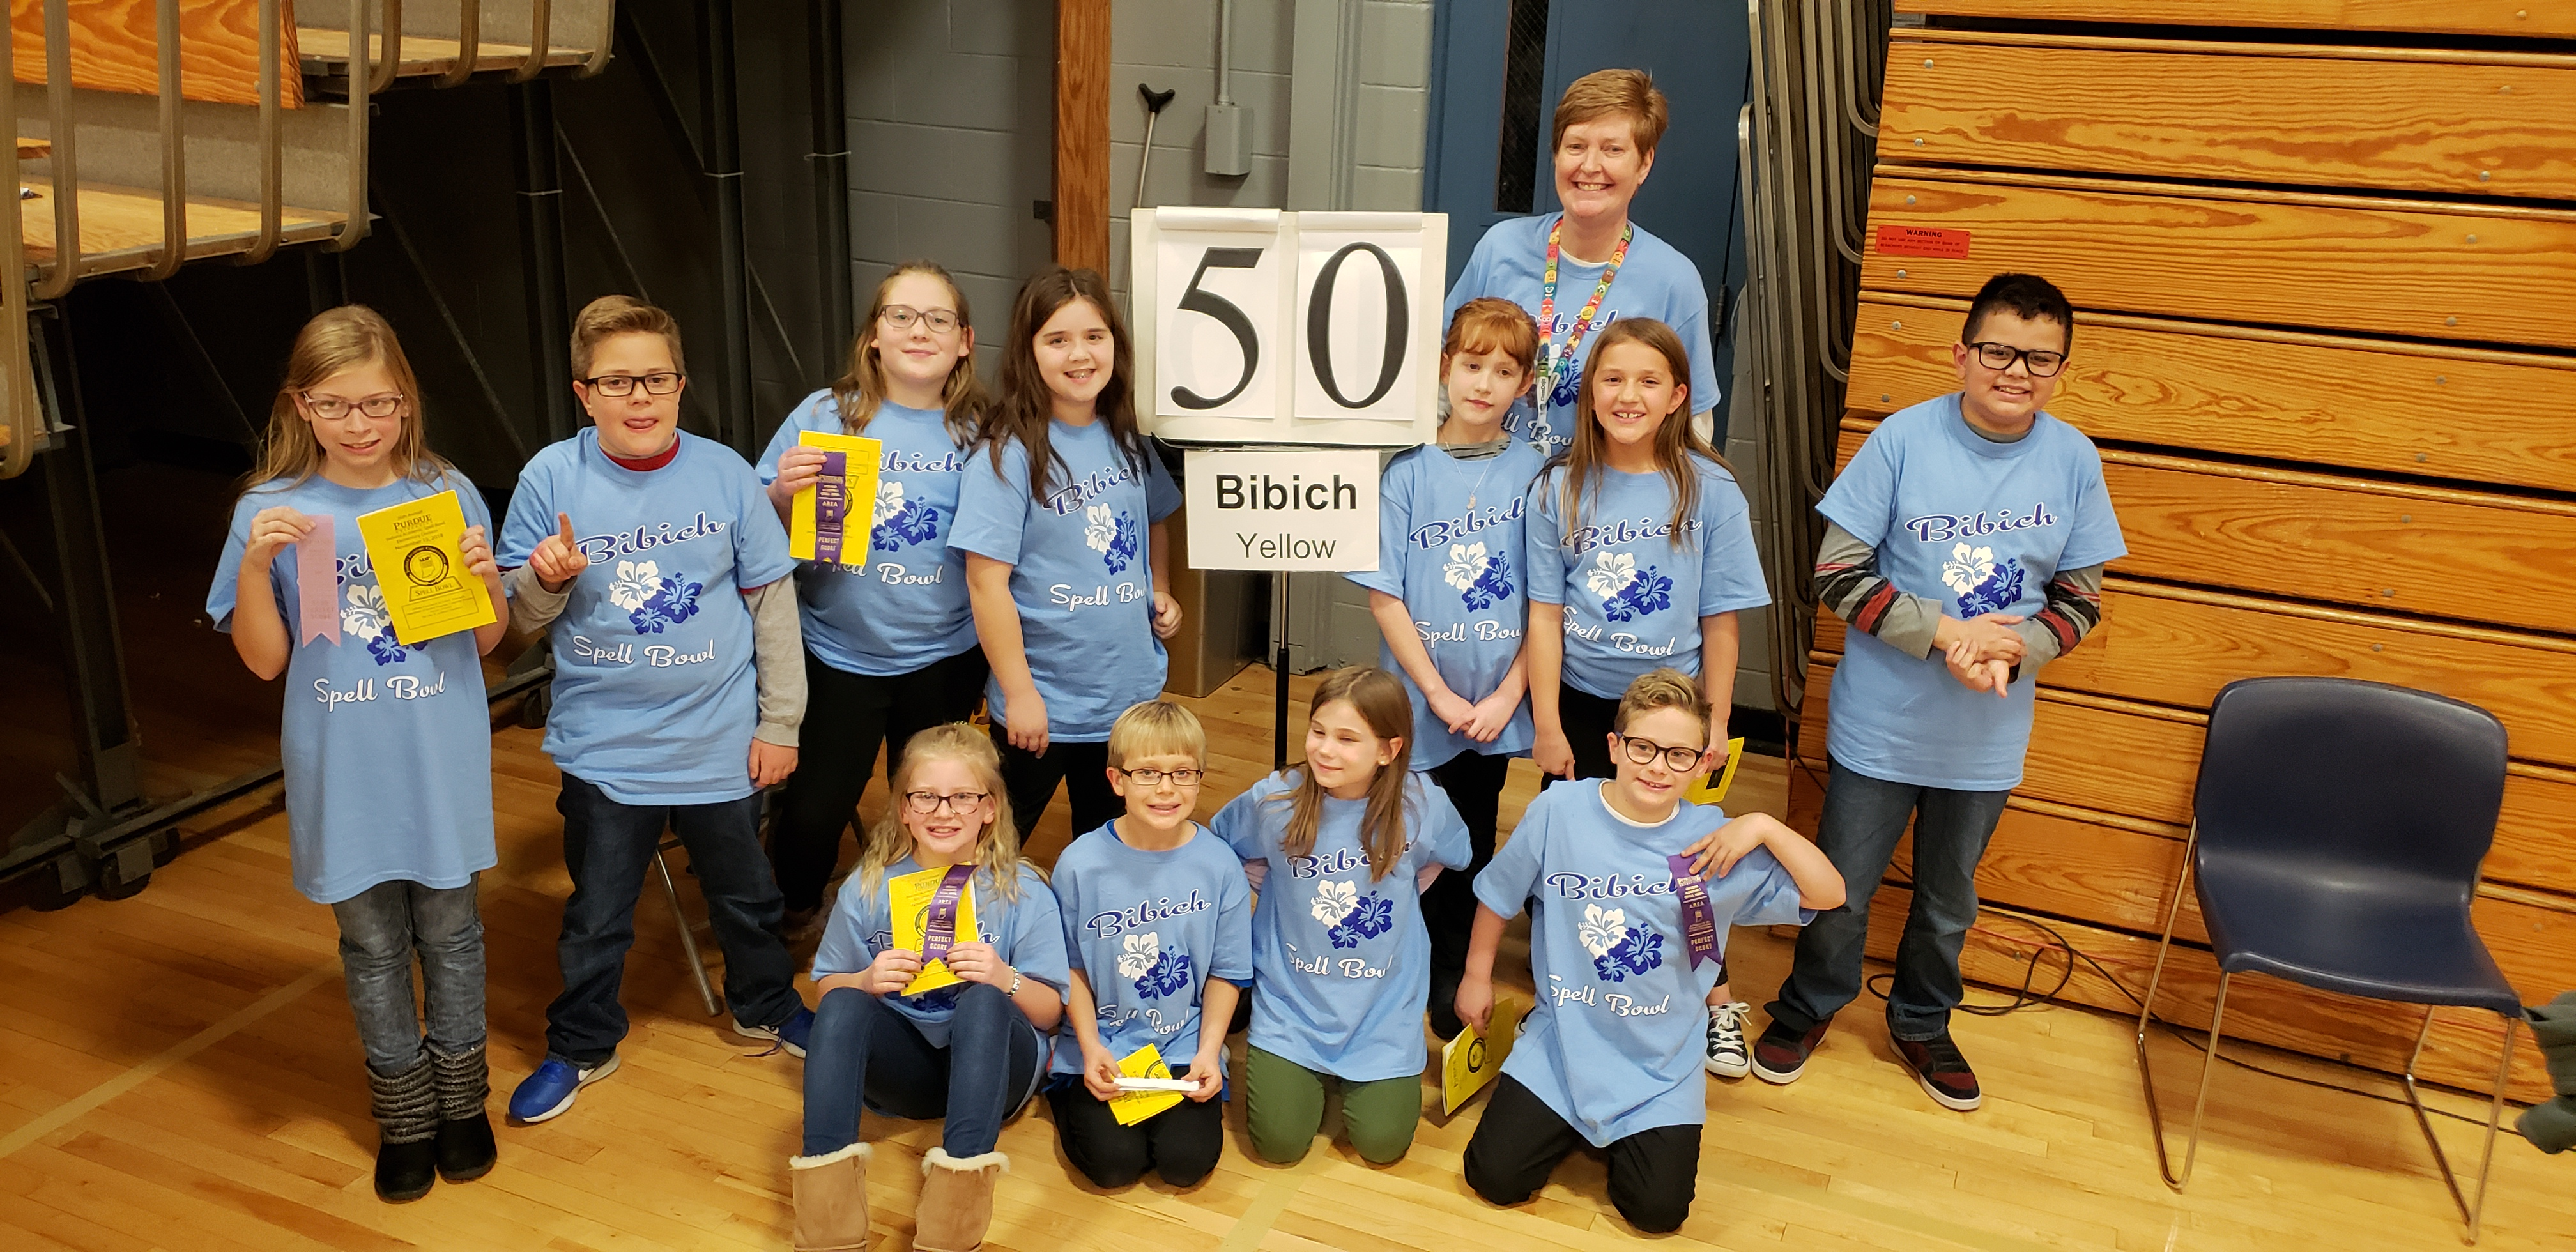 Bibich students participate in Spell Bowl.